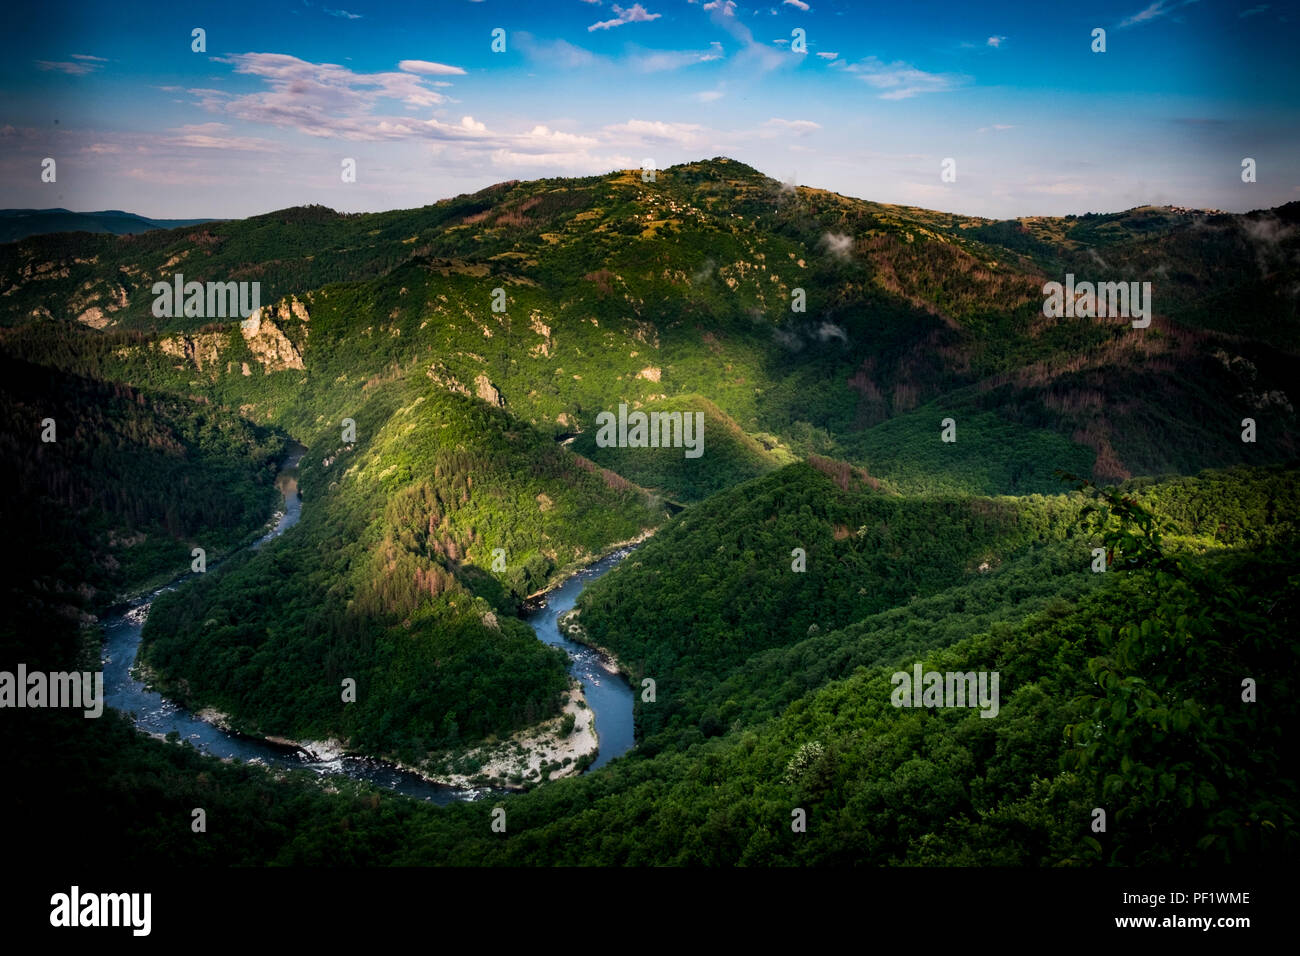 A meander in the Arda River near the town of Ardino in the eastern Rhodope Mountains. Stock Photo